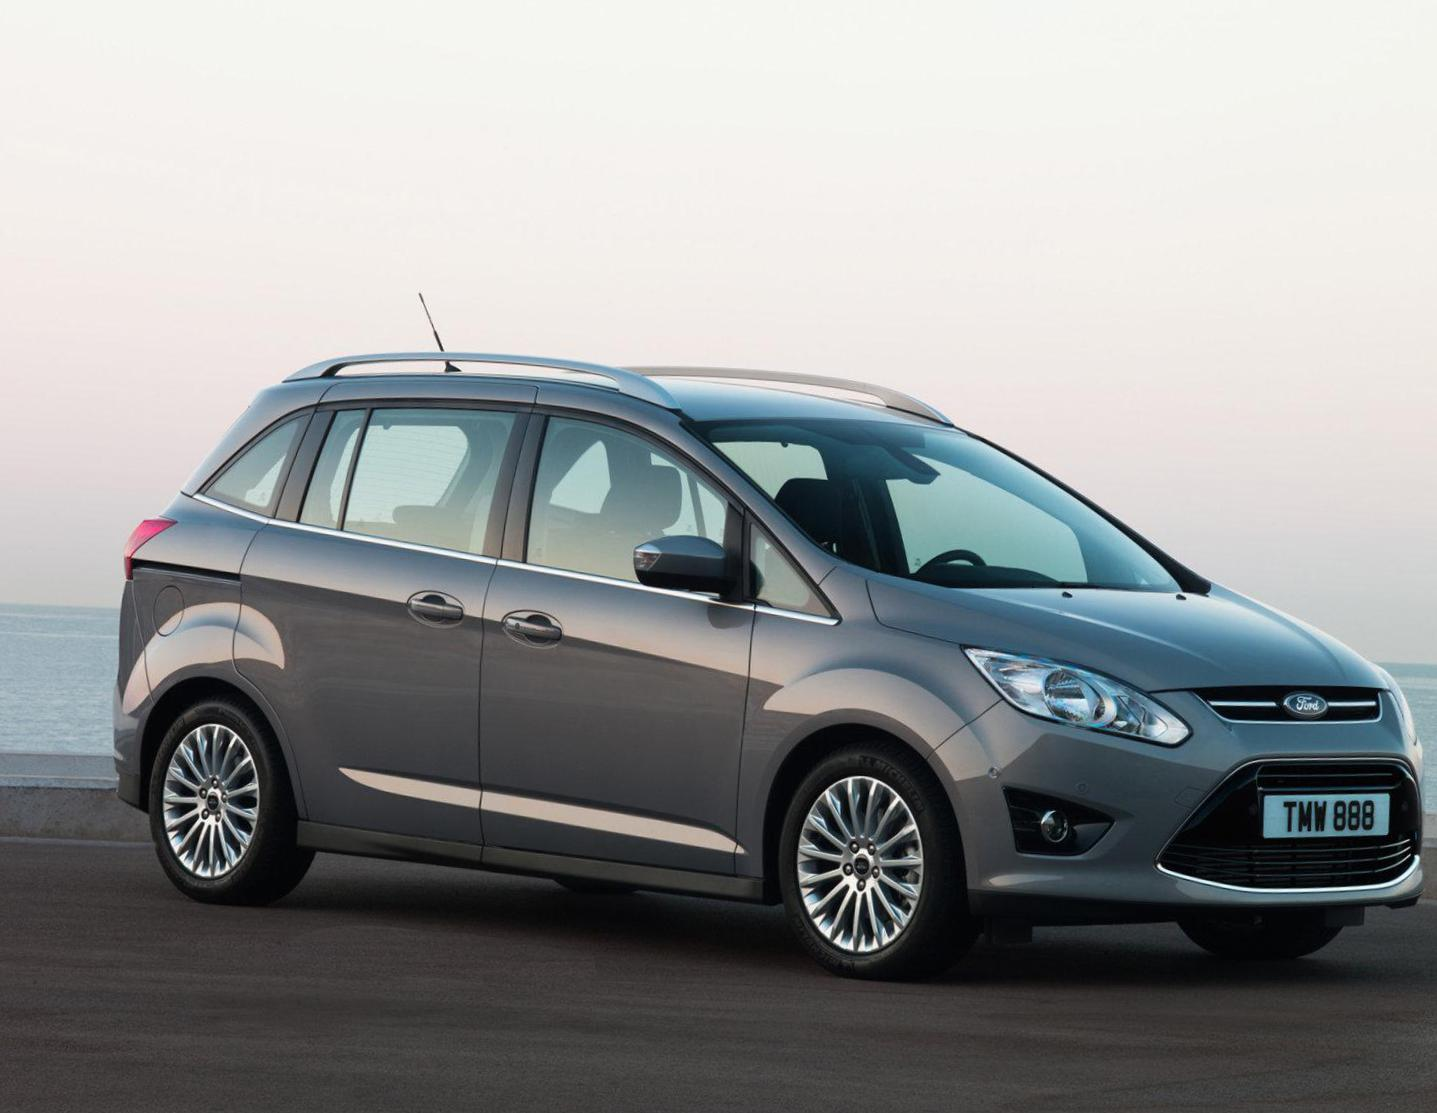 Grand C-Max Ford specs 2014